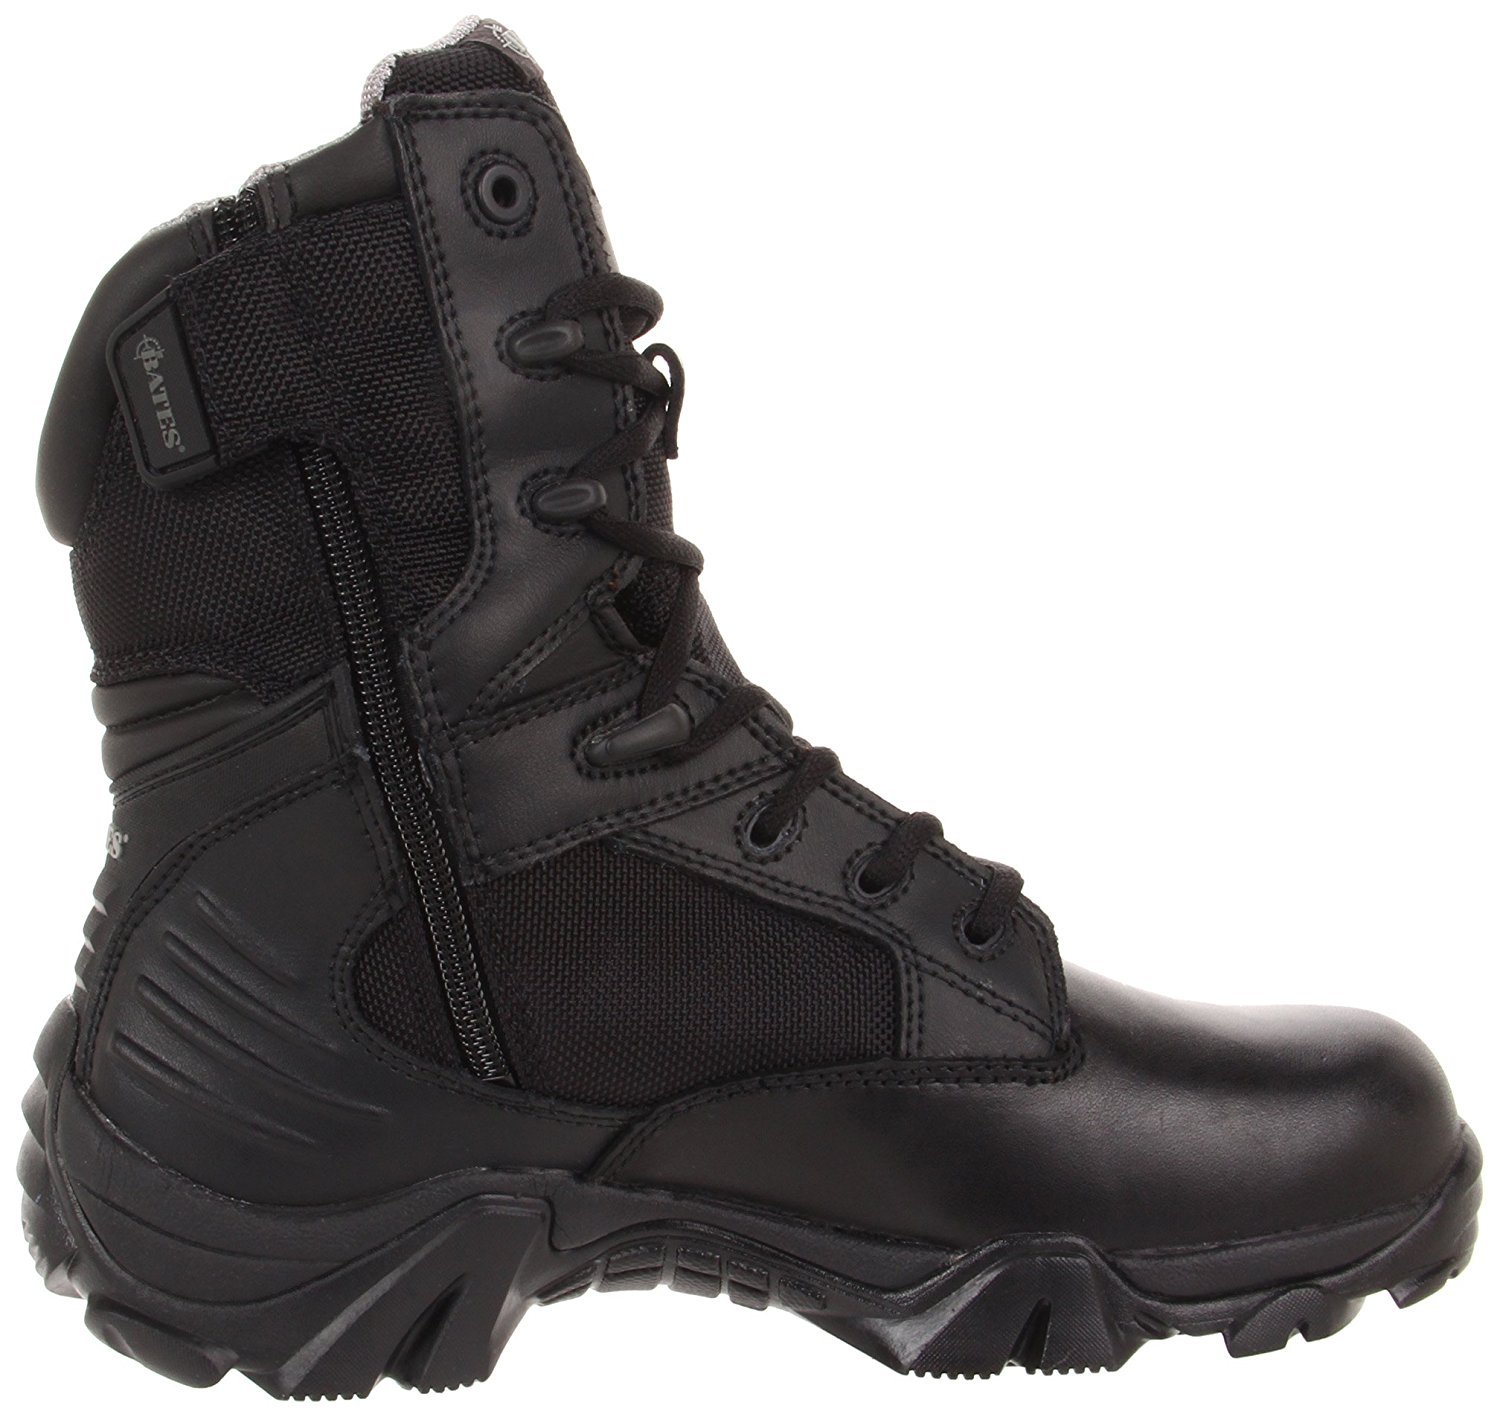 "Bates E02500 Enforcer CTS 9"" GTX with Side-Zip-"